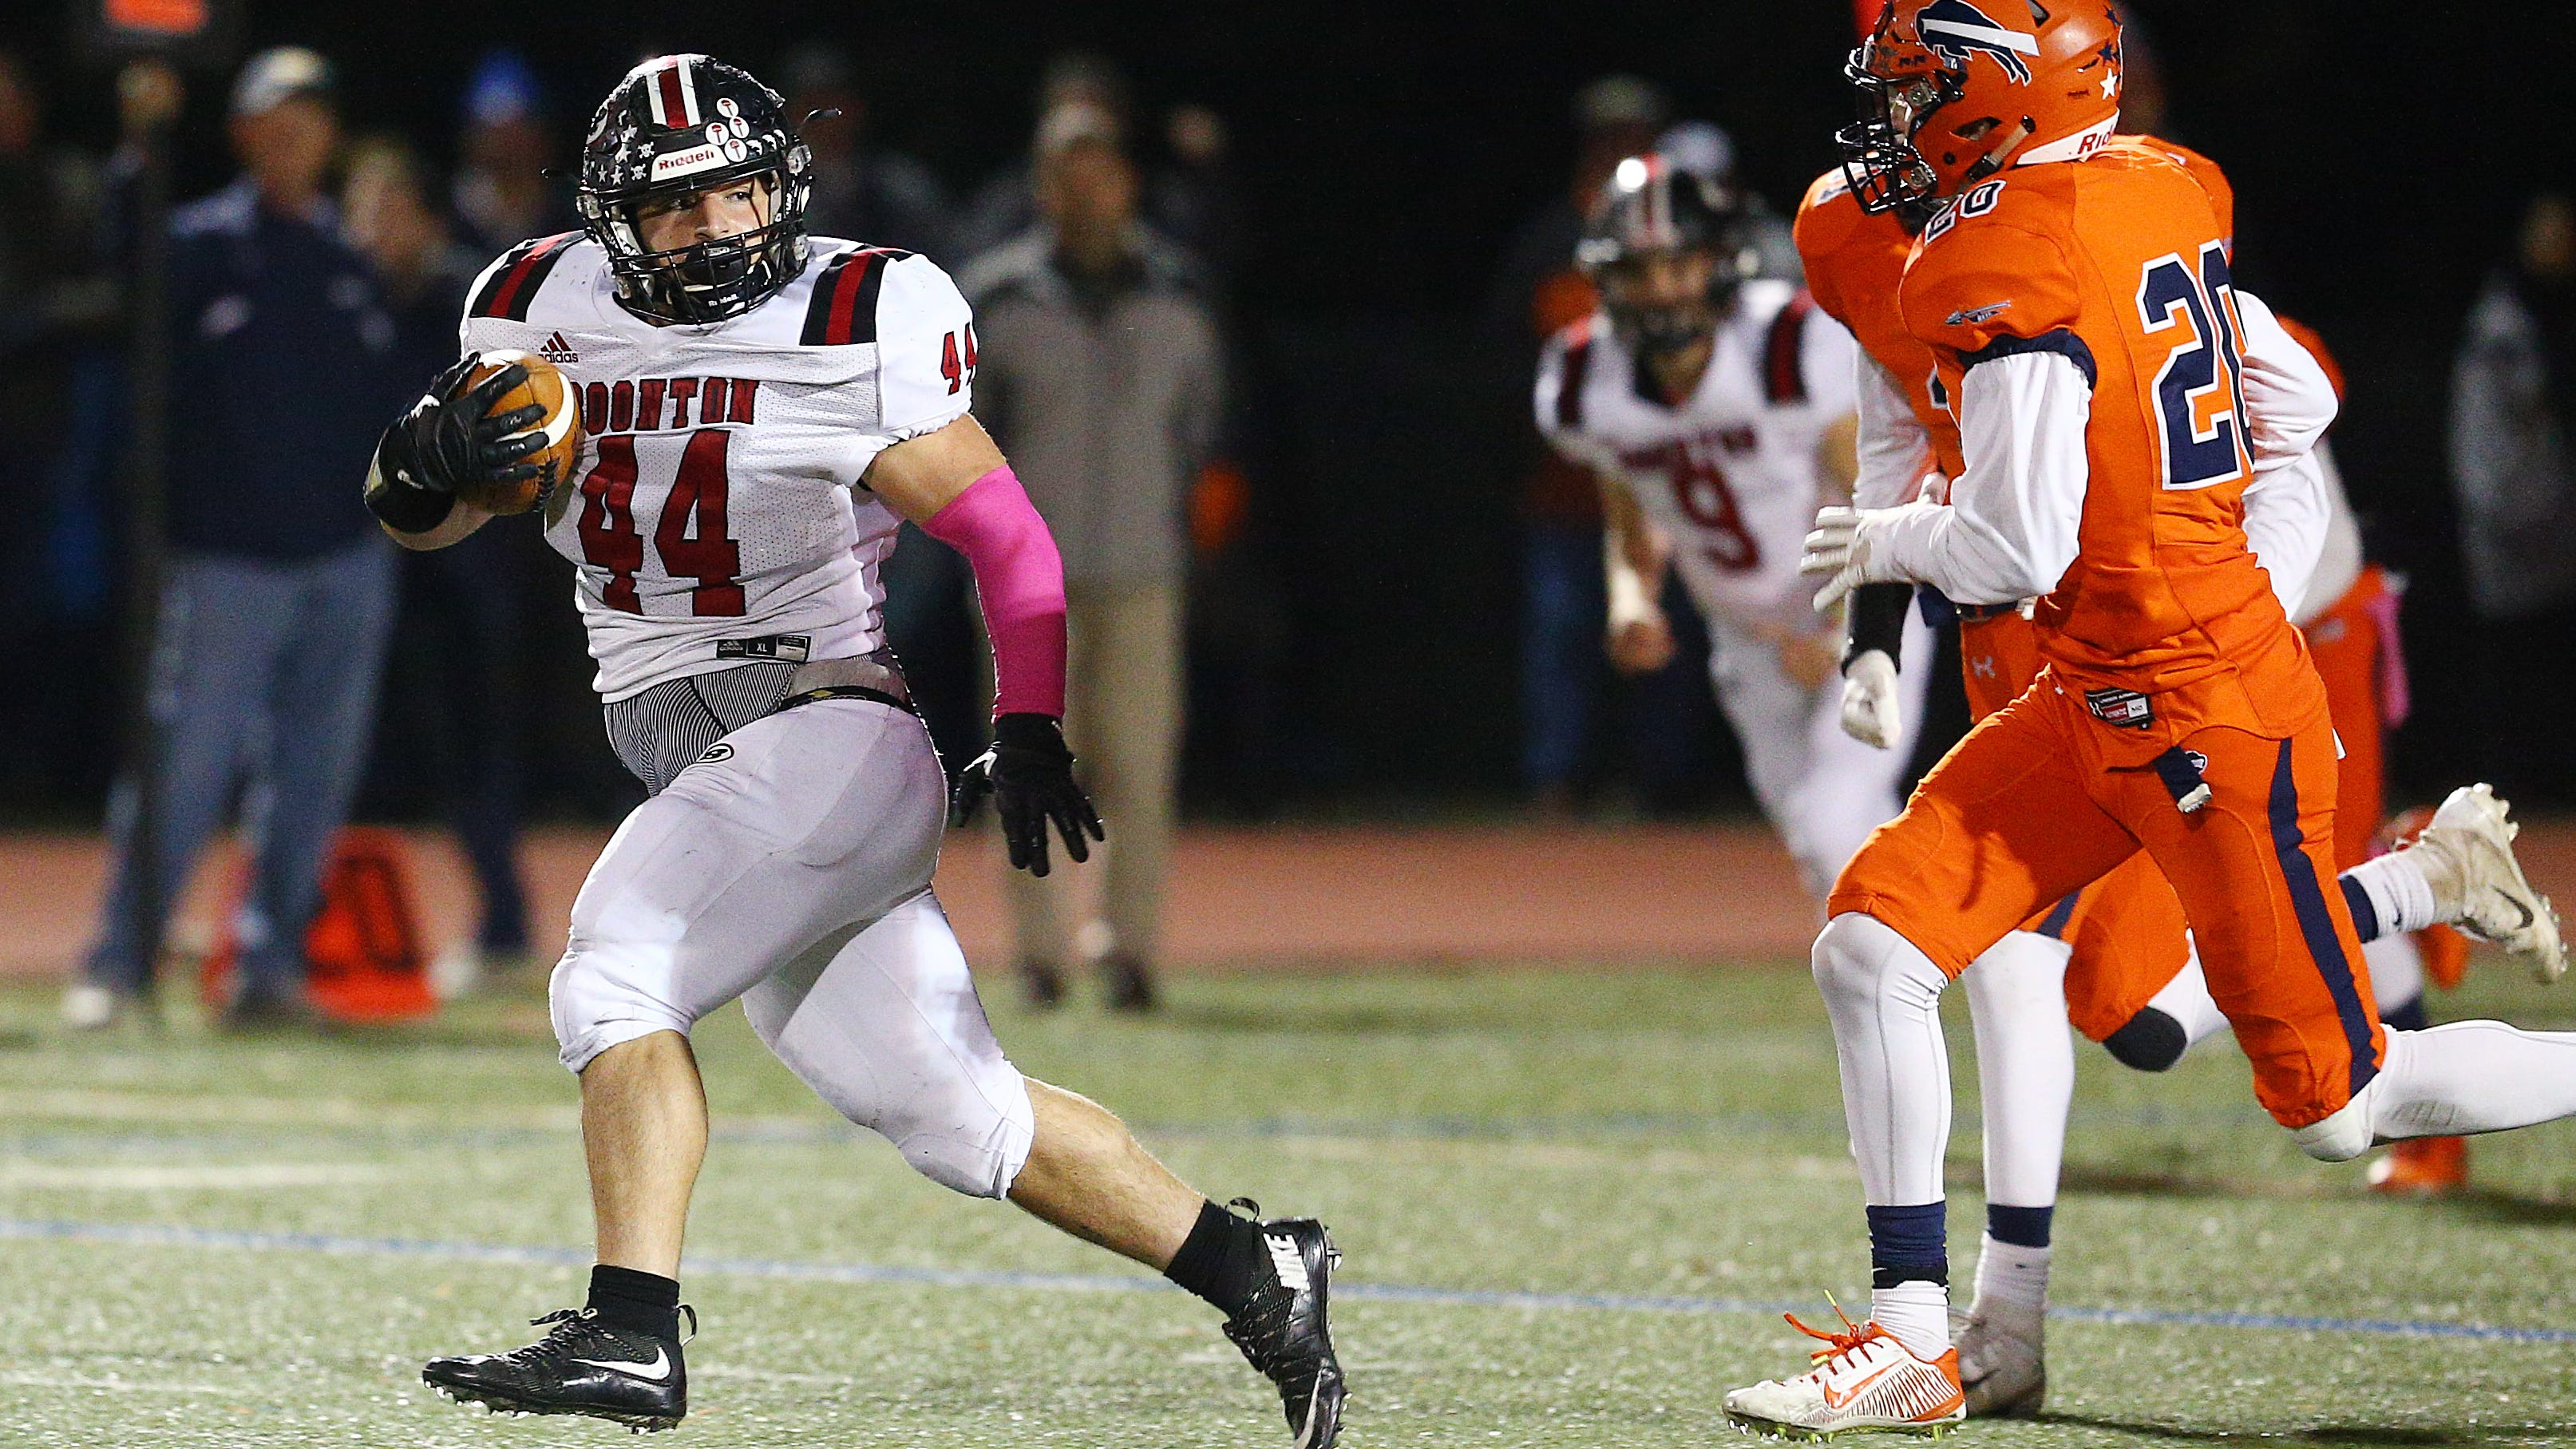 Boonton fullback Joseph Cannizzaro gains major yardage vs. Mountain Lakes during their SFC American Blue Friday night football game. The Bombers won 42-14 to win the division. October 26, 2018, Mountain Lakes, NJ